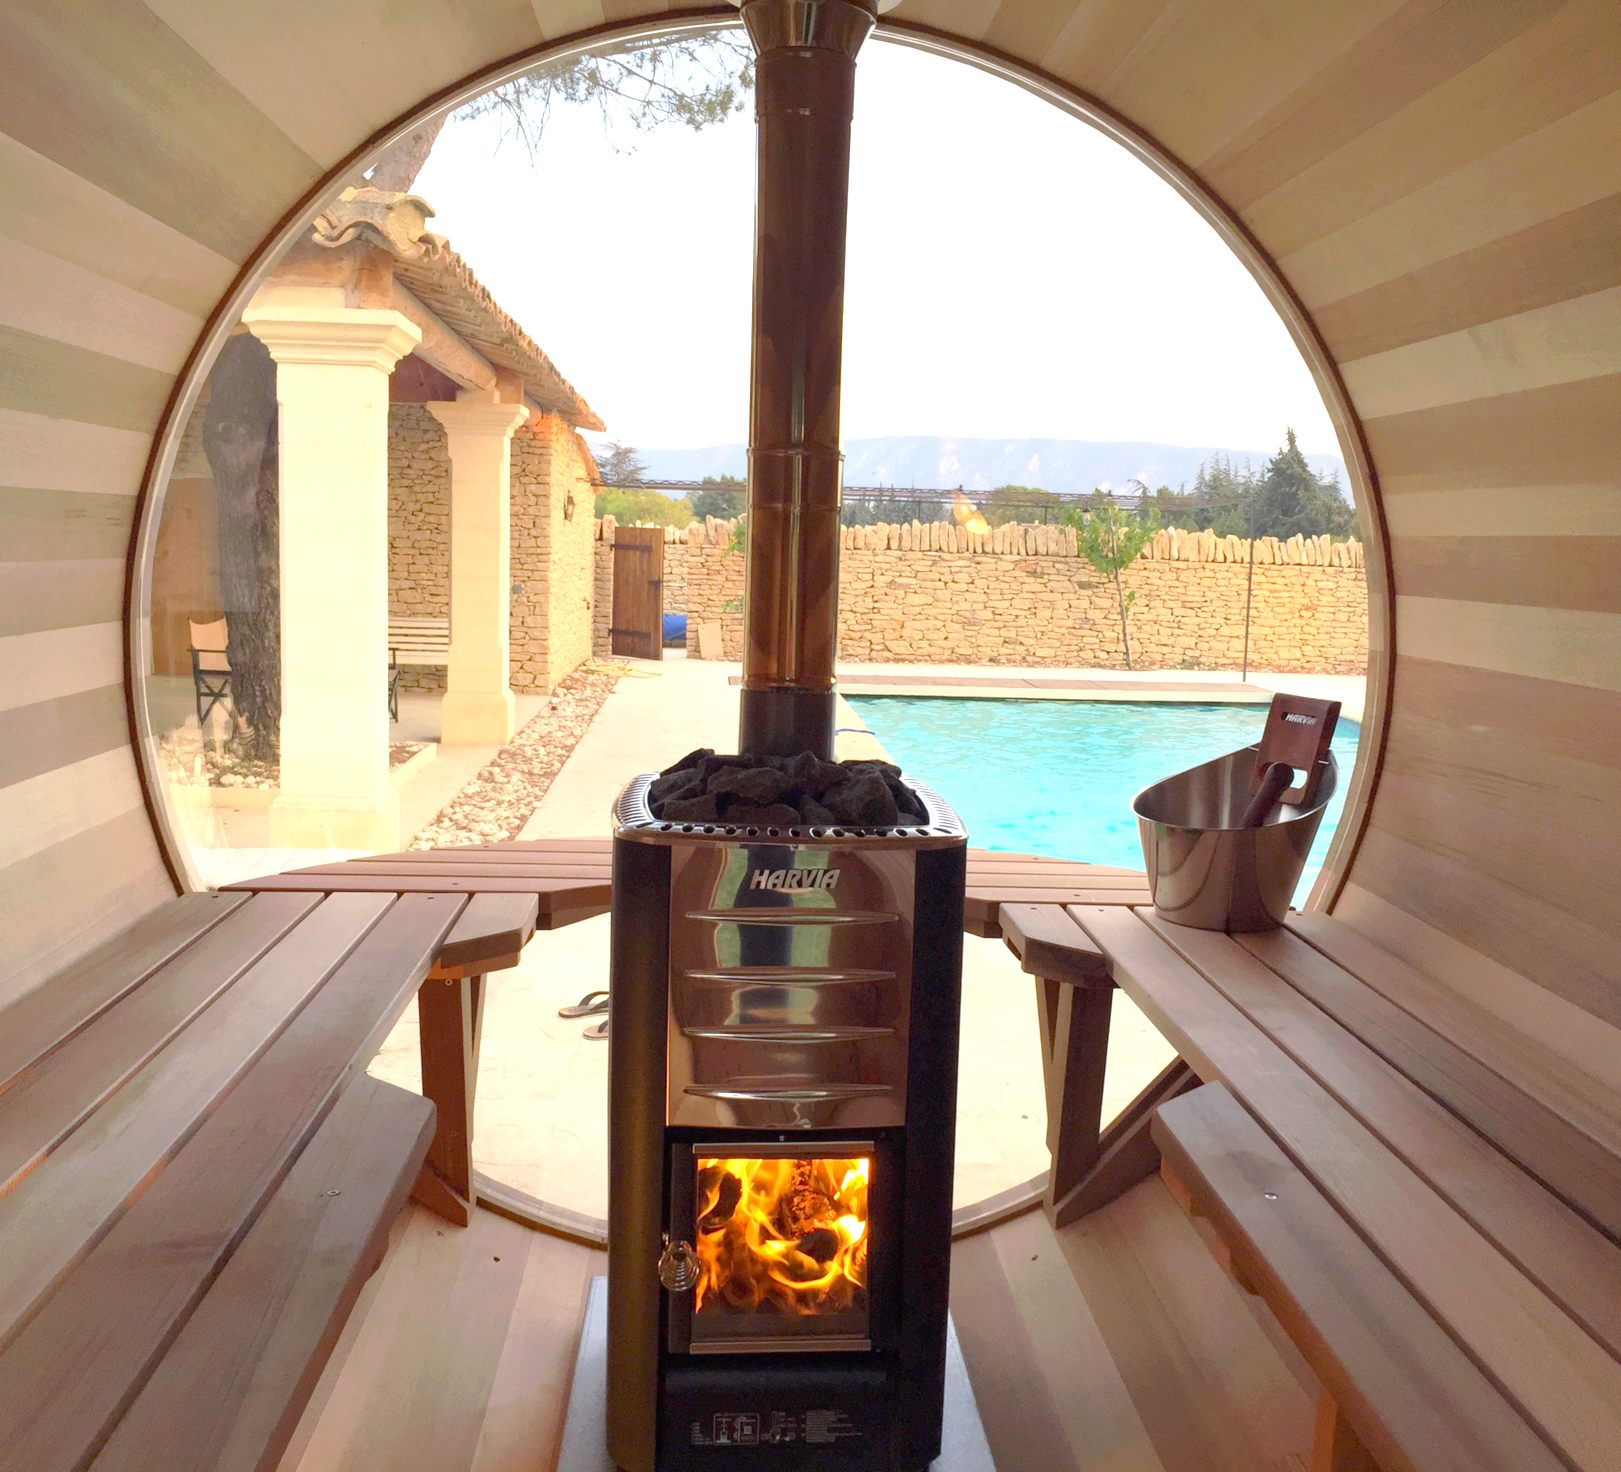 Wood-heated scenic view sauna by the pool